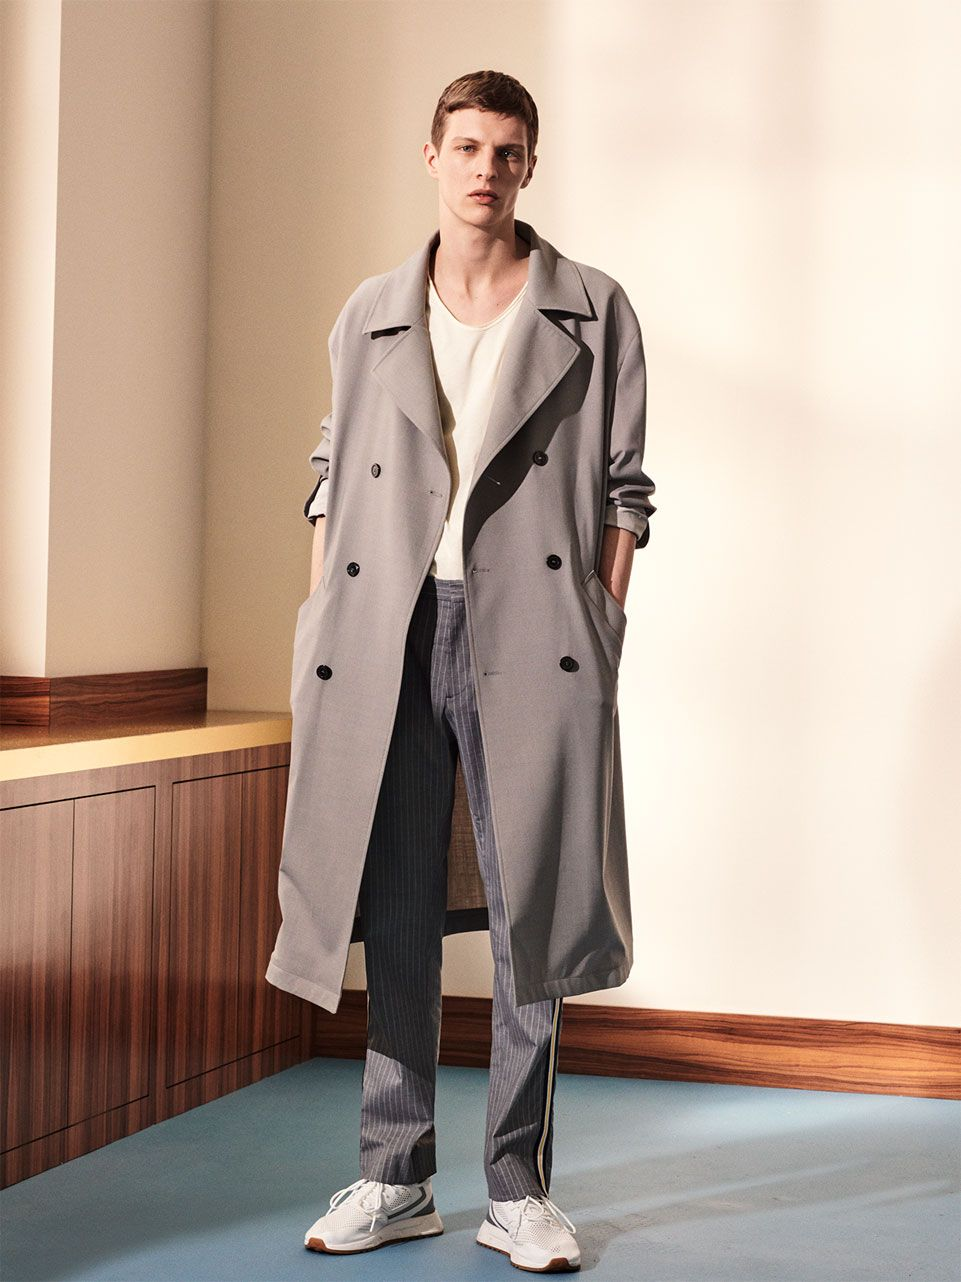 d74fd7c3721e Image 1 of OVERSIZED TRENCH COAT   PINSTRIPE TROUSERS   TECHNICAL FABRIC  SNEAKERS   BLACK LEATHER BOWLING BAG from Zara